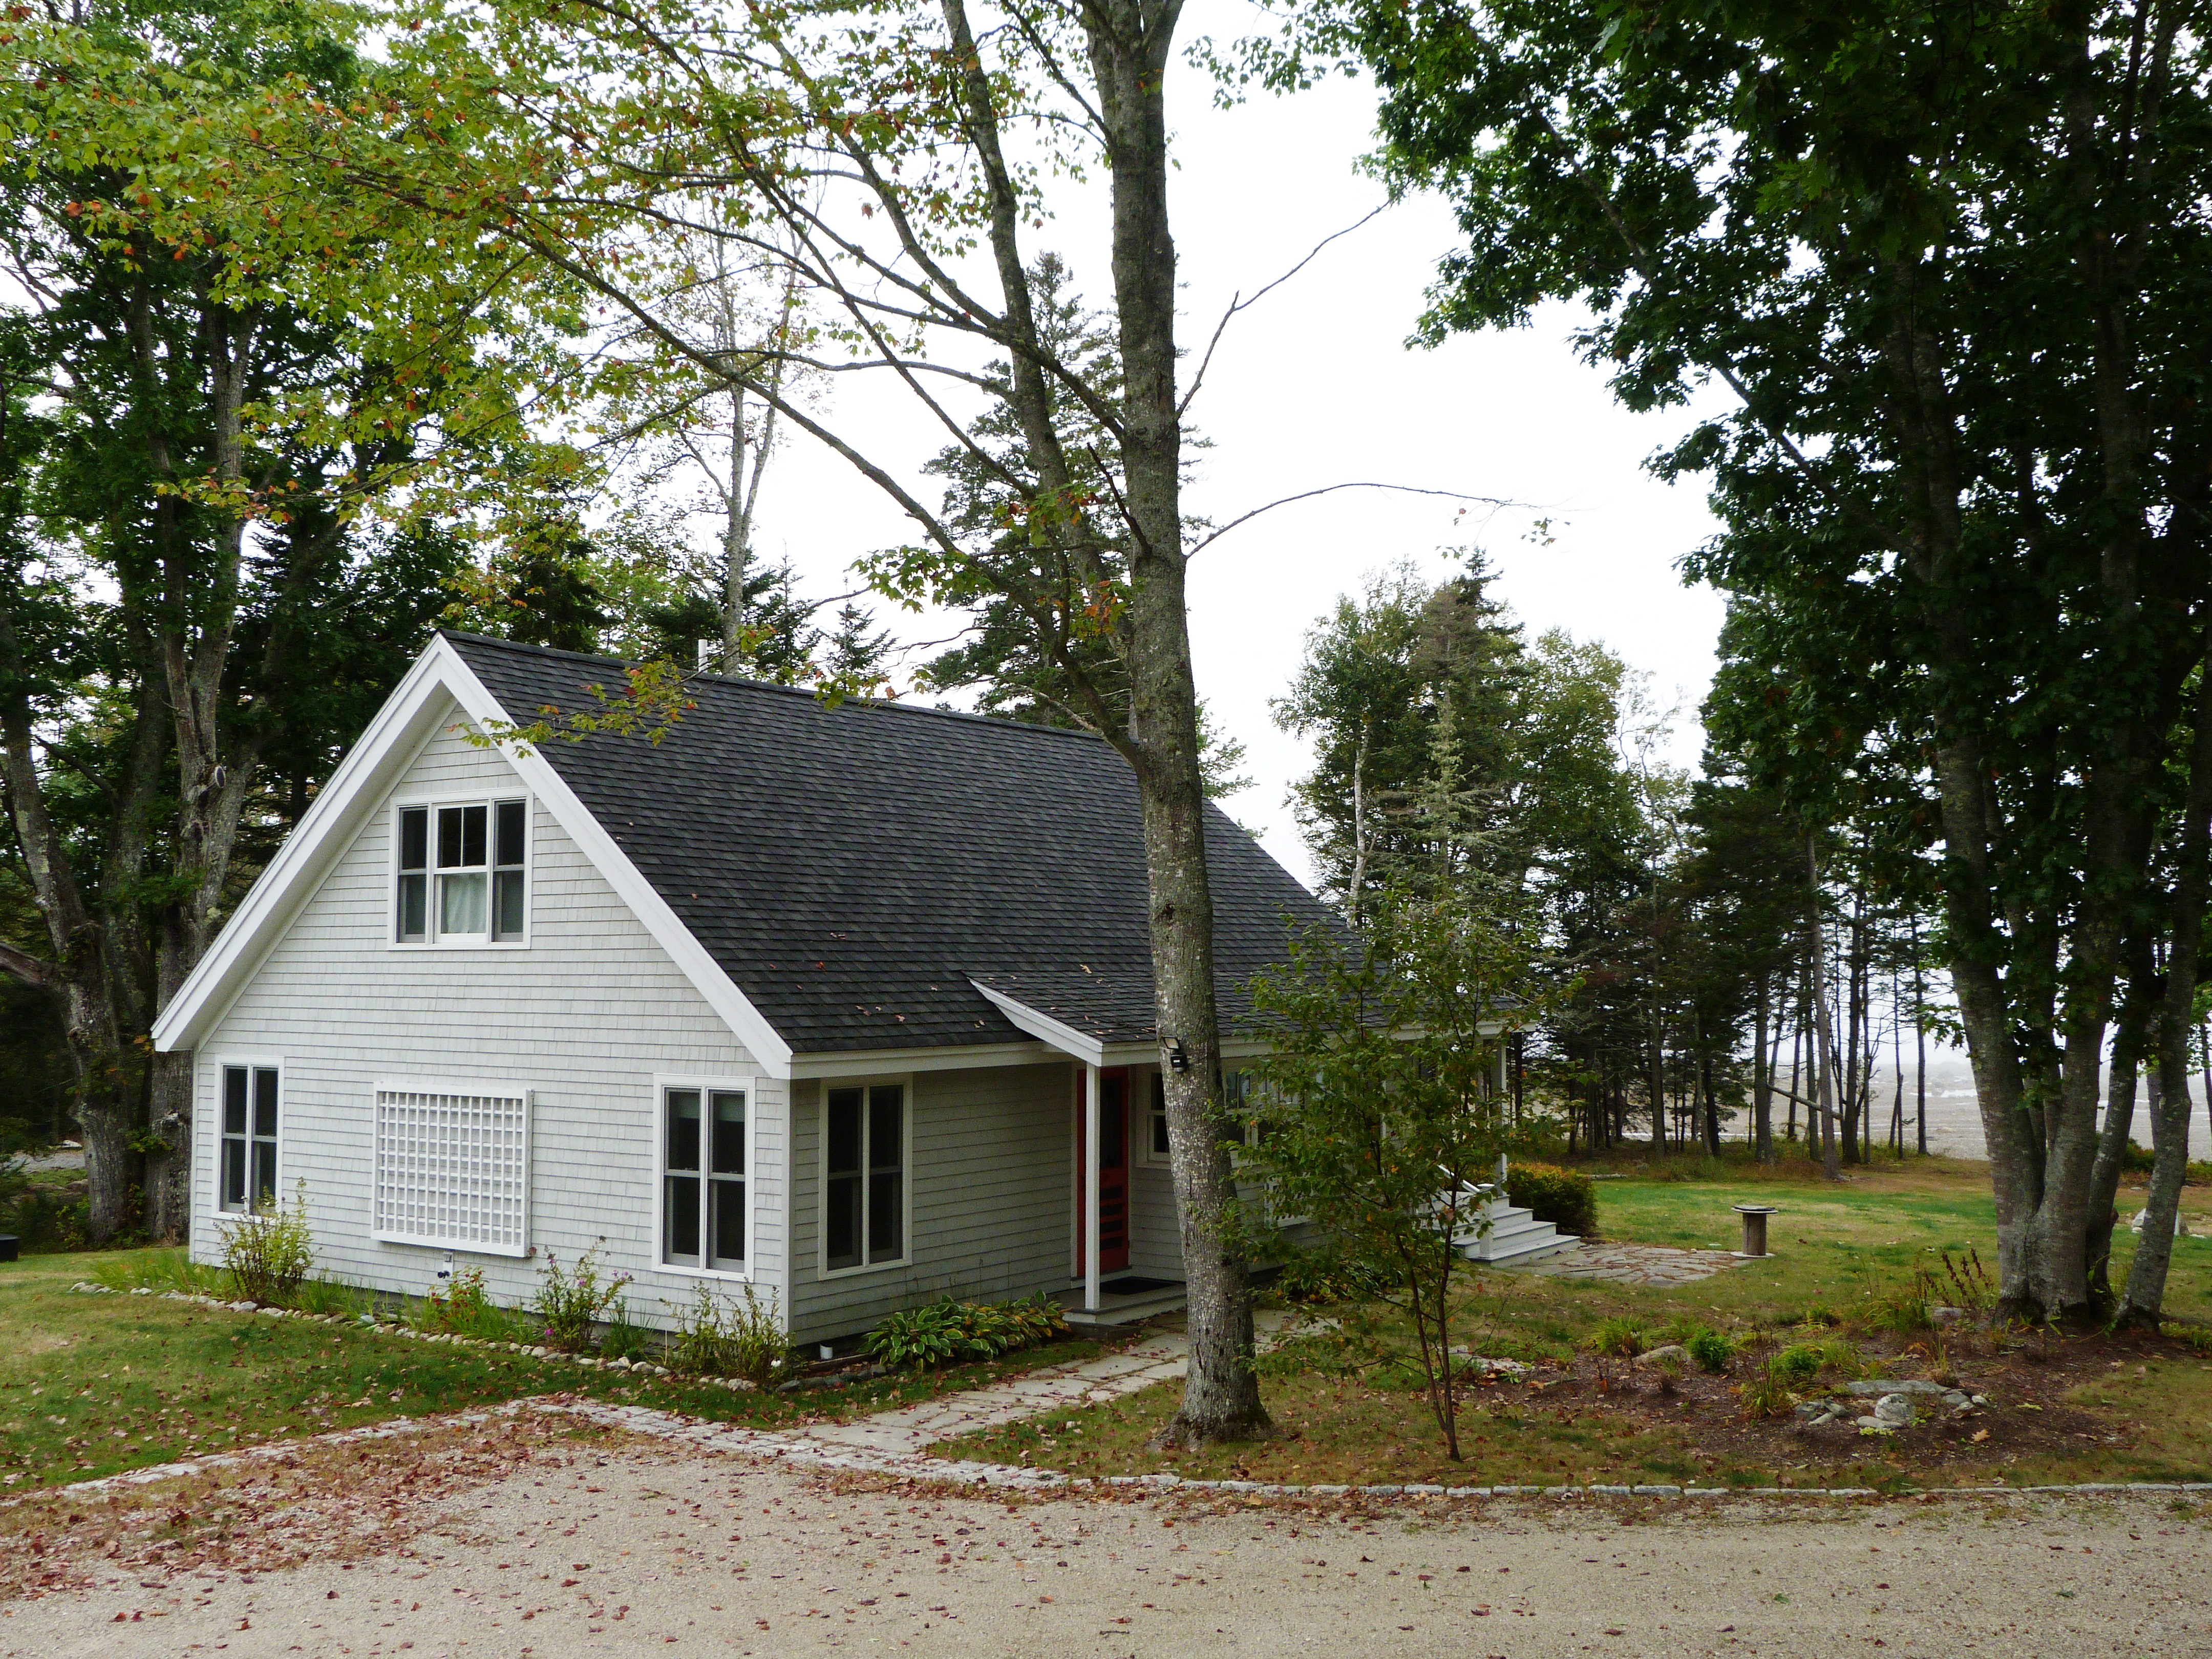 sale an in perched maine harbor for savage early cottages allowing the featured large on ledge and sunset friday me susetledge pitched southwest gable waterfront feature covered steep fred views its real over estate hillside northeast harbors with cottage